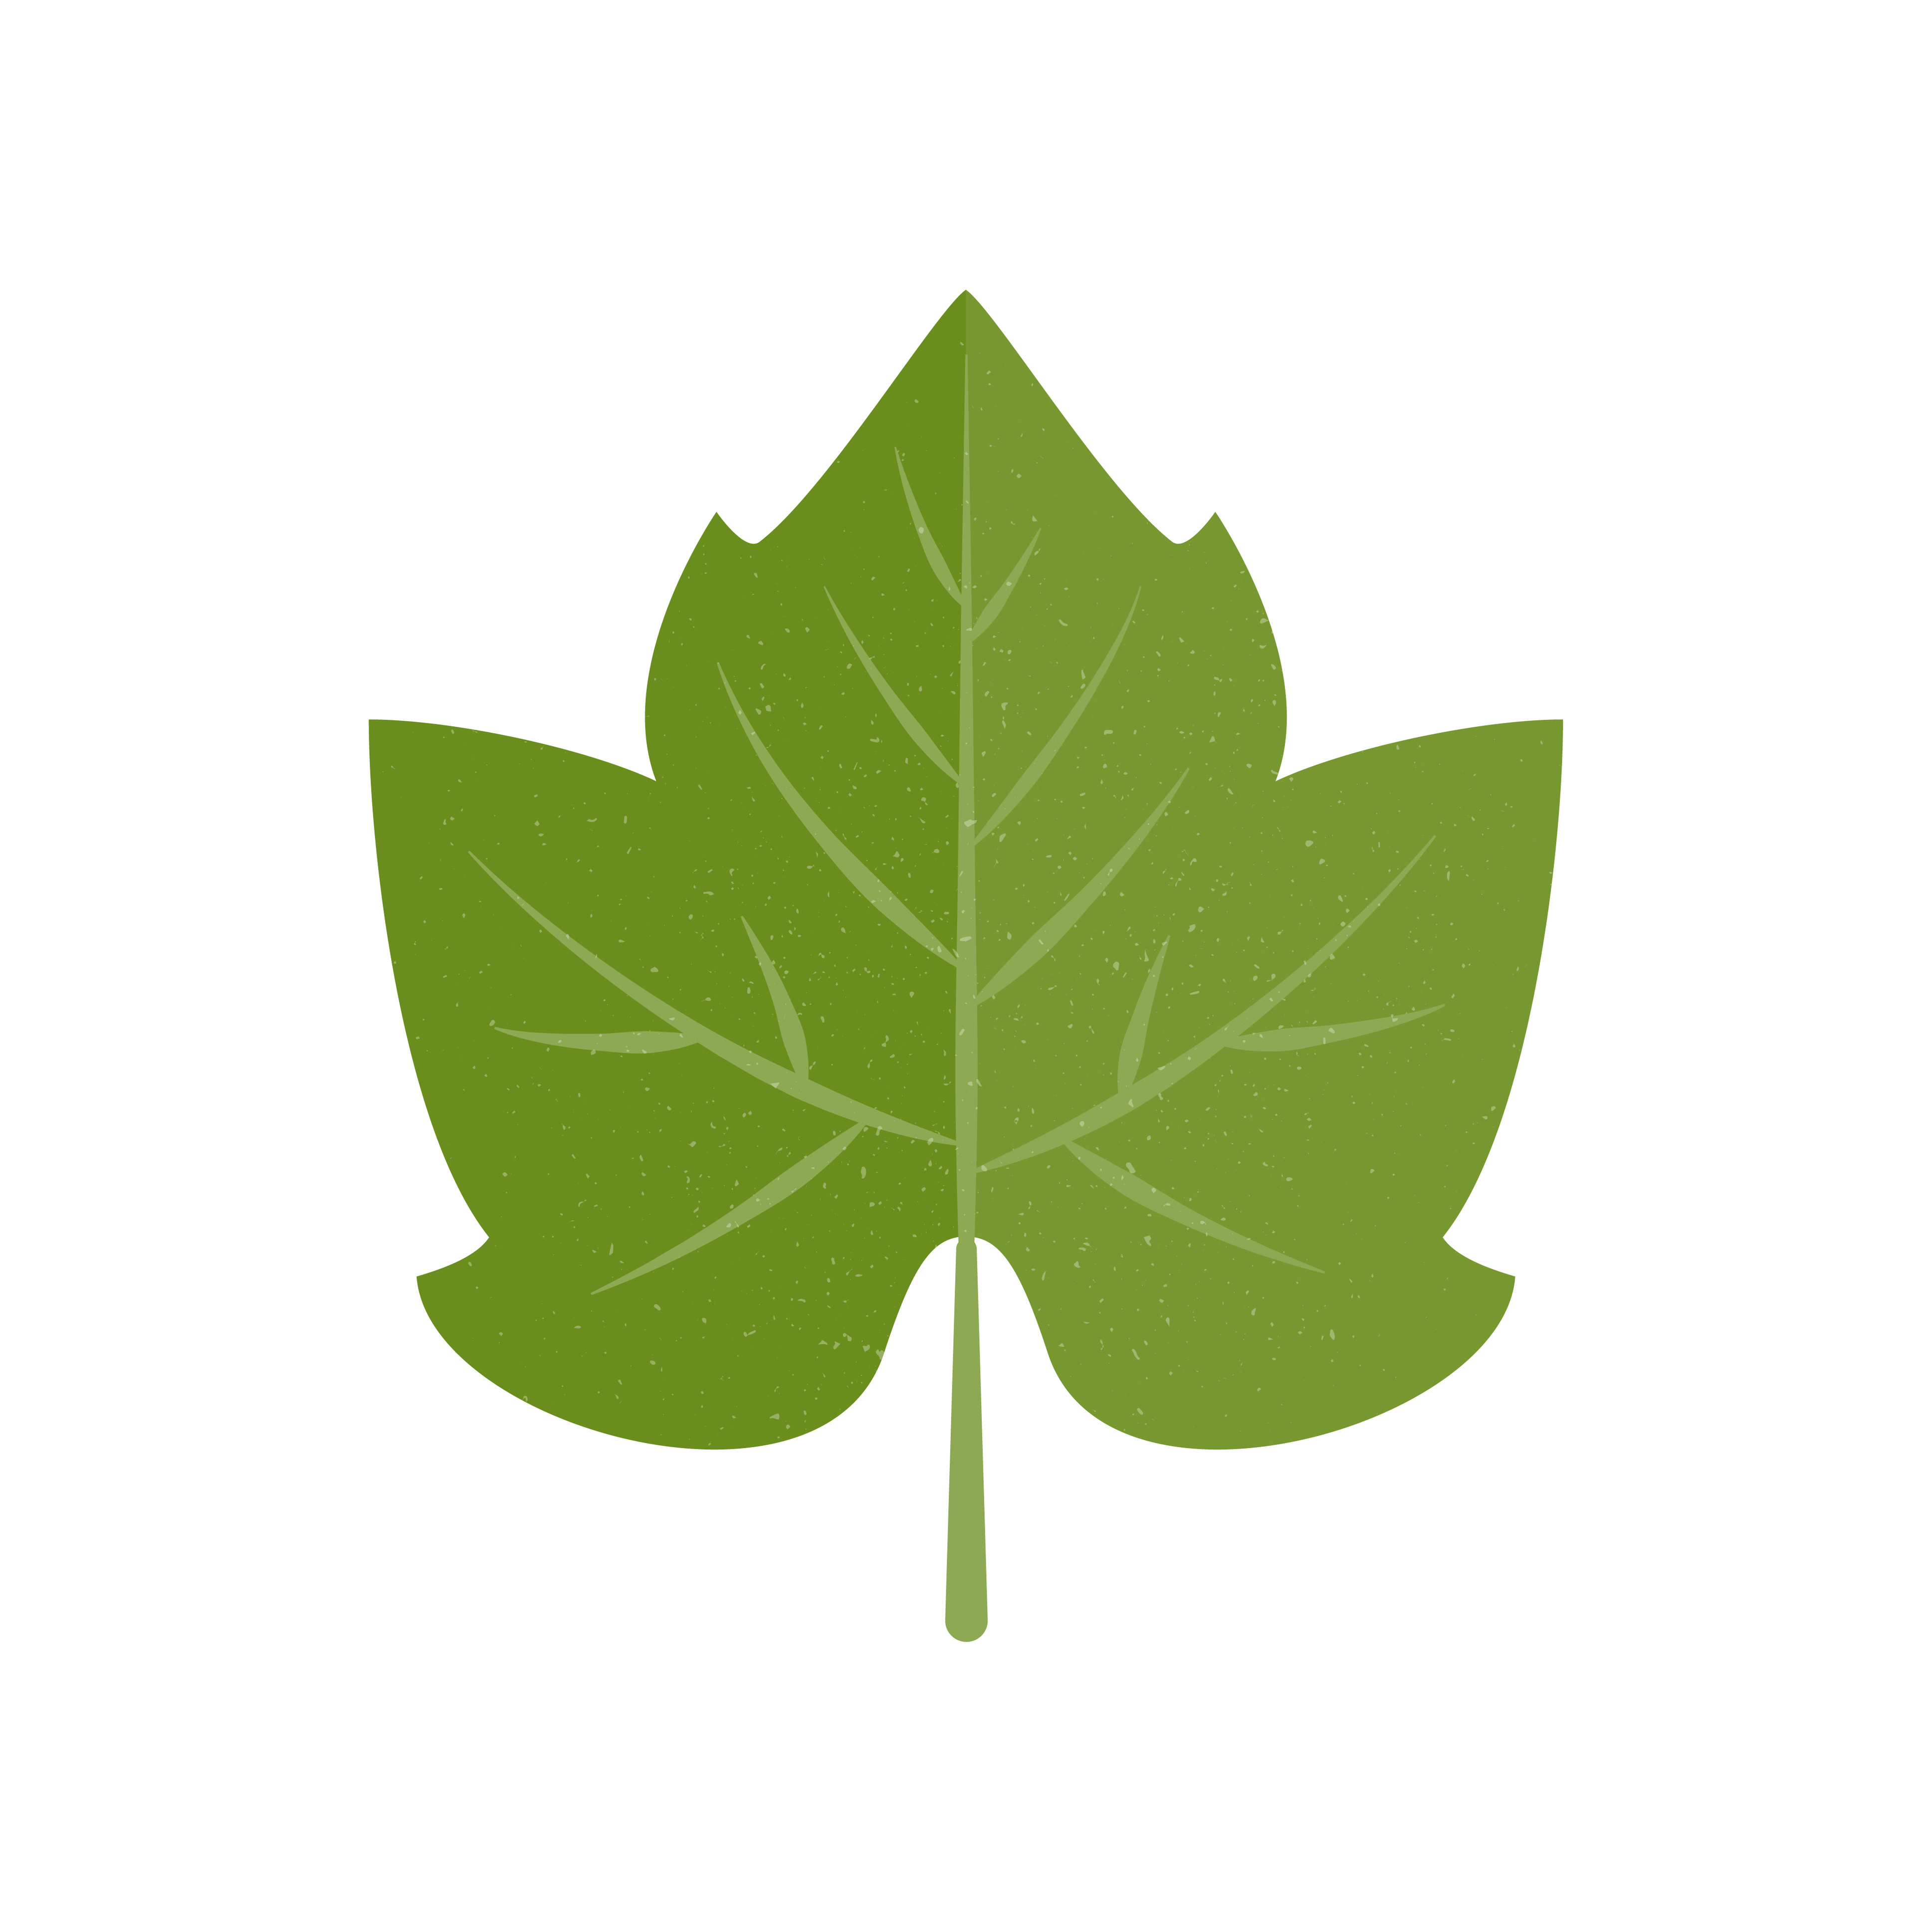 Green icon of grape leaf. Vector illustration isolated on white background.